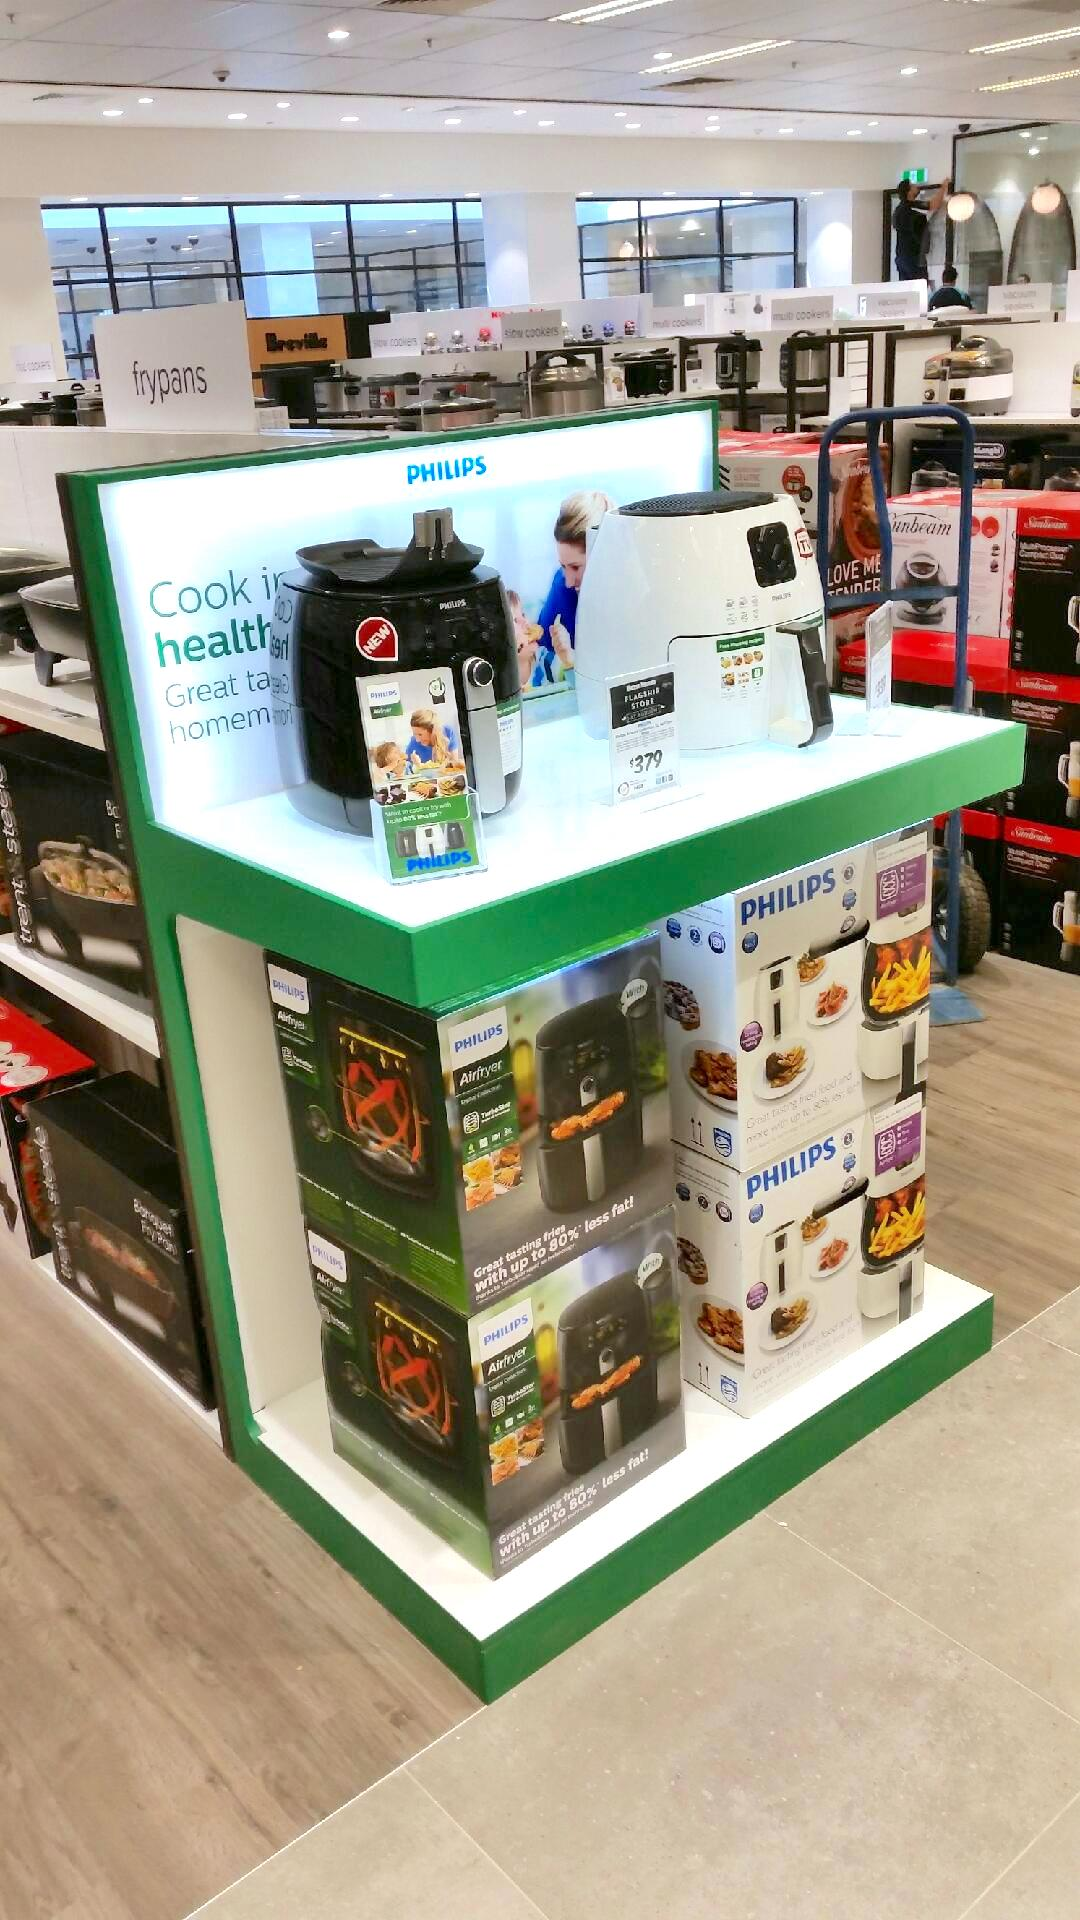 Philips-Cooking-Appliances-Permanent-End-Cap-Display-designed-by-POS-Agency-Genesis-Retail-Displays